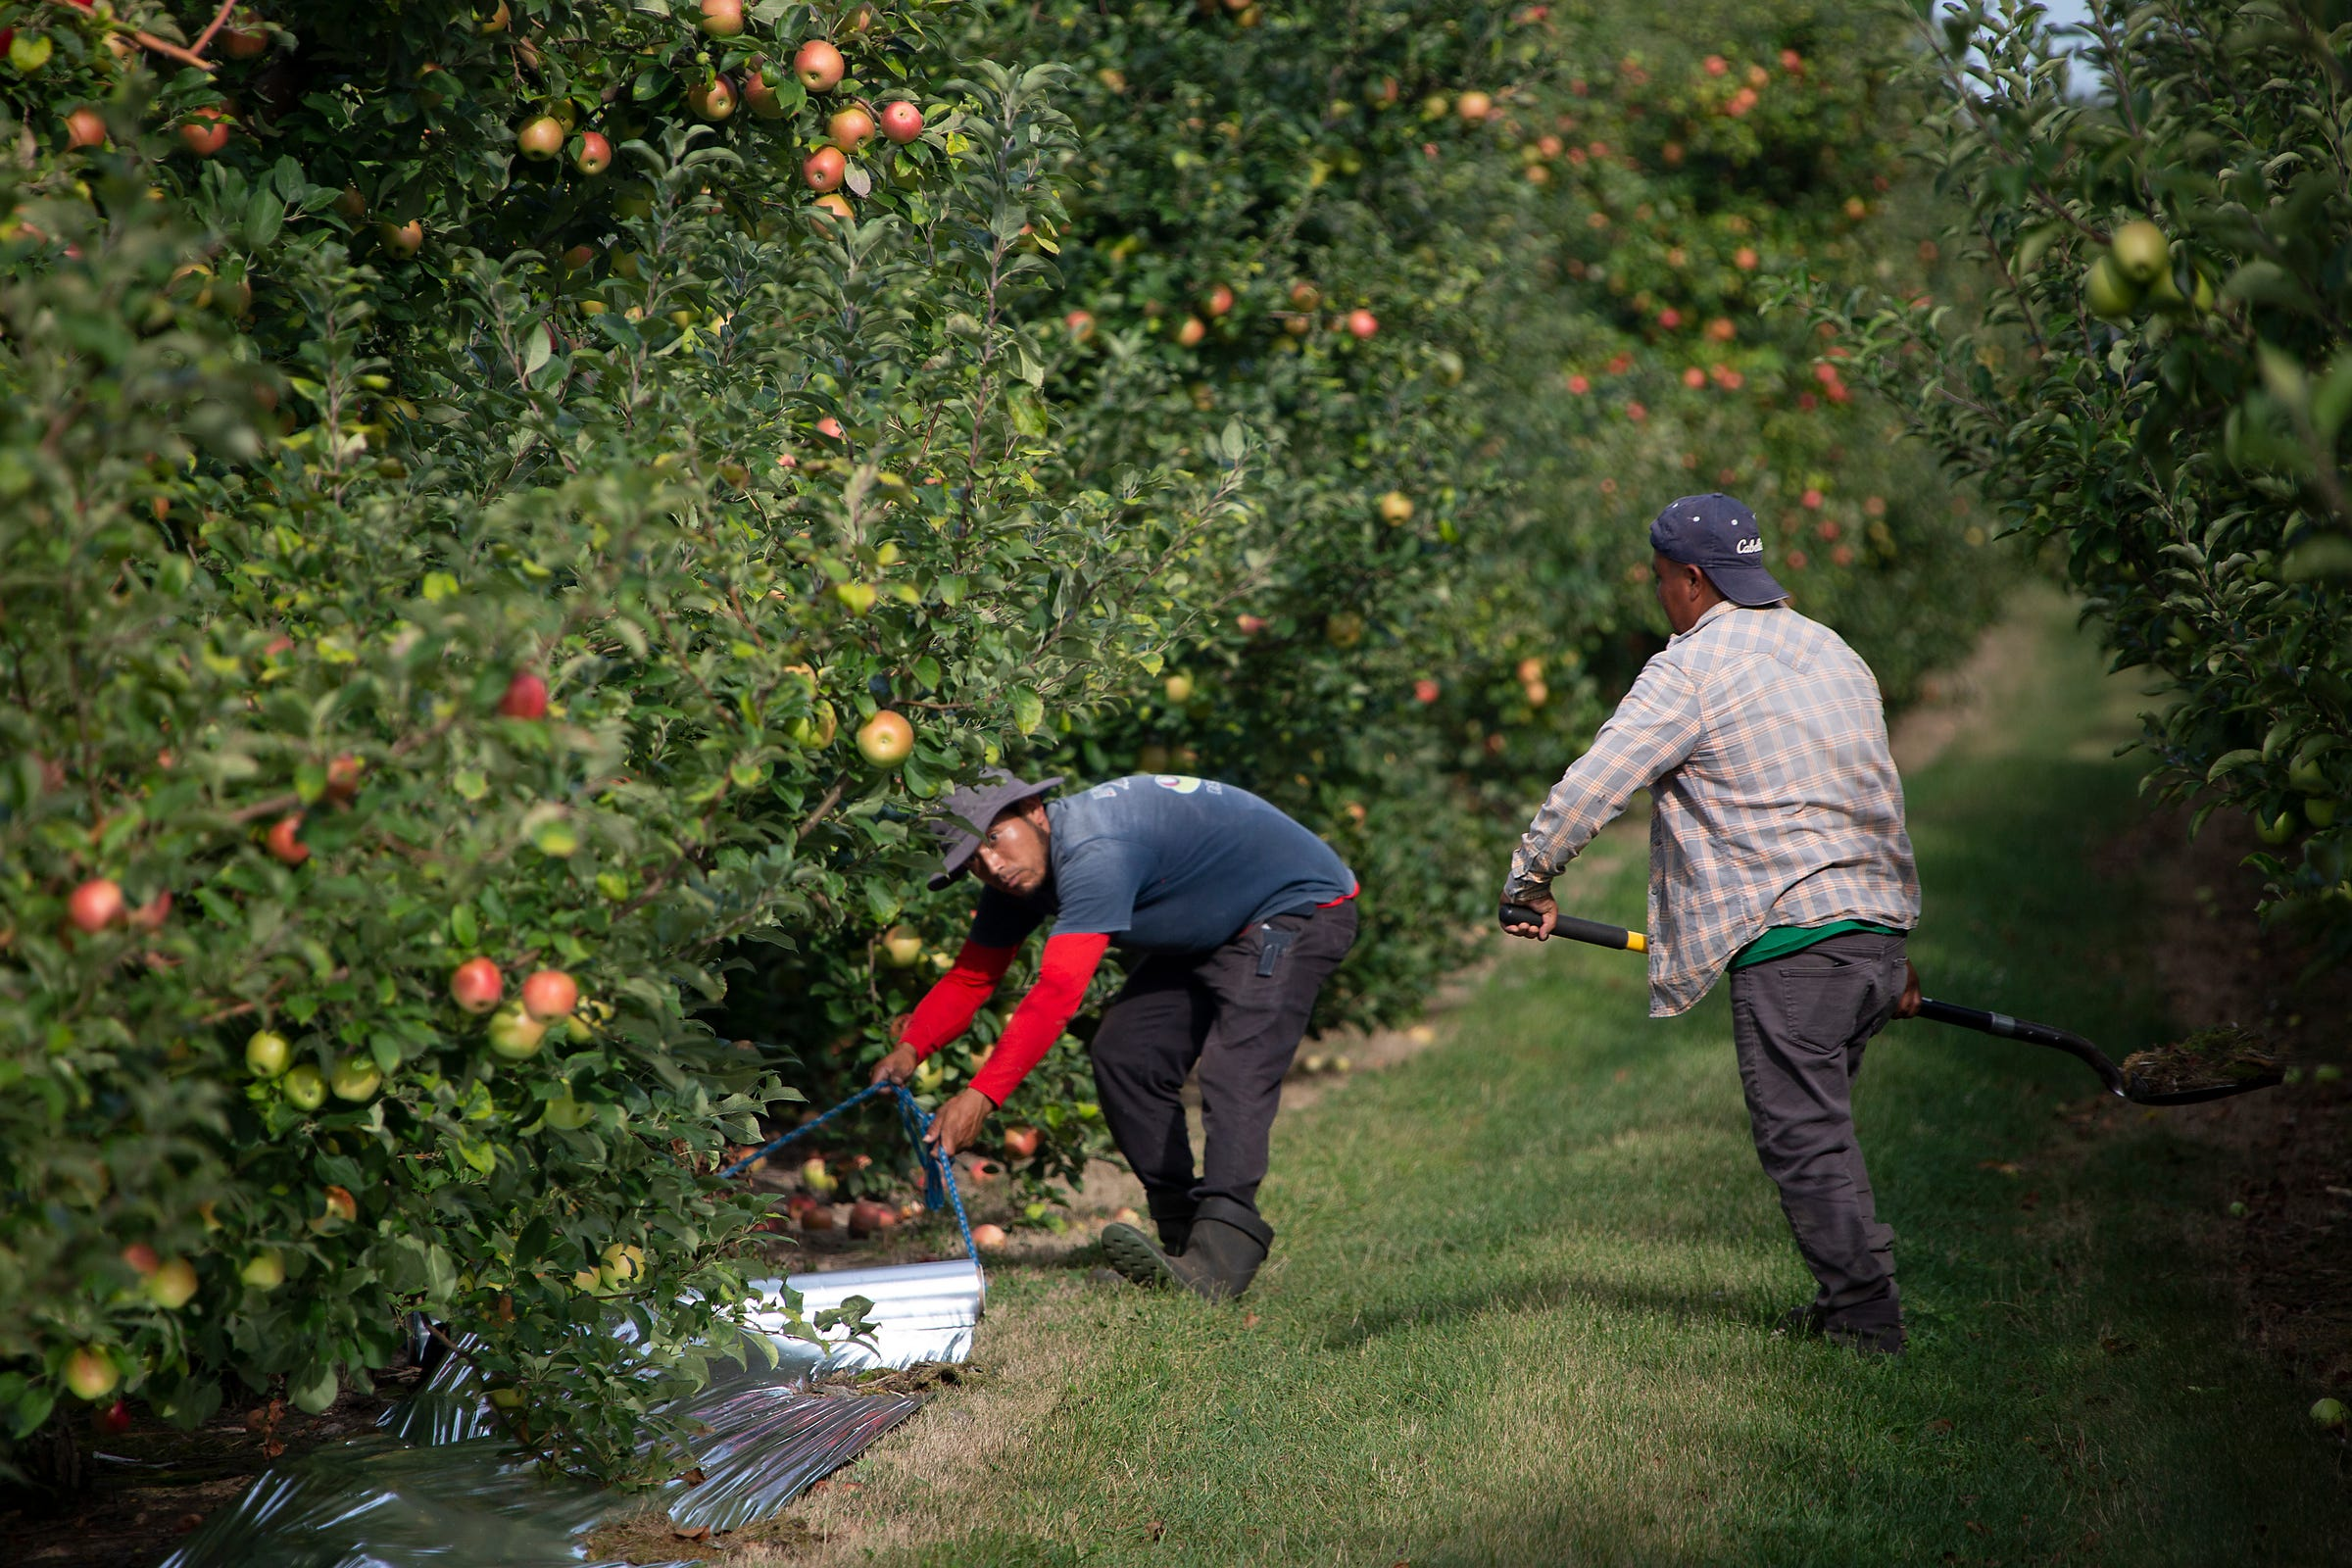 Migrant workers lay down a reflective material to help apples with ripening on Aug. 31, 2020, at a farm near Grand Rapids.